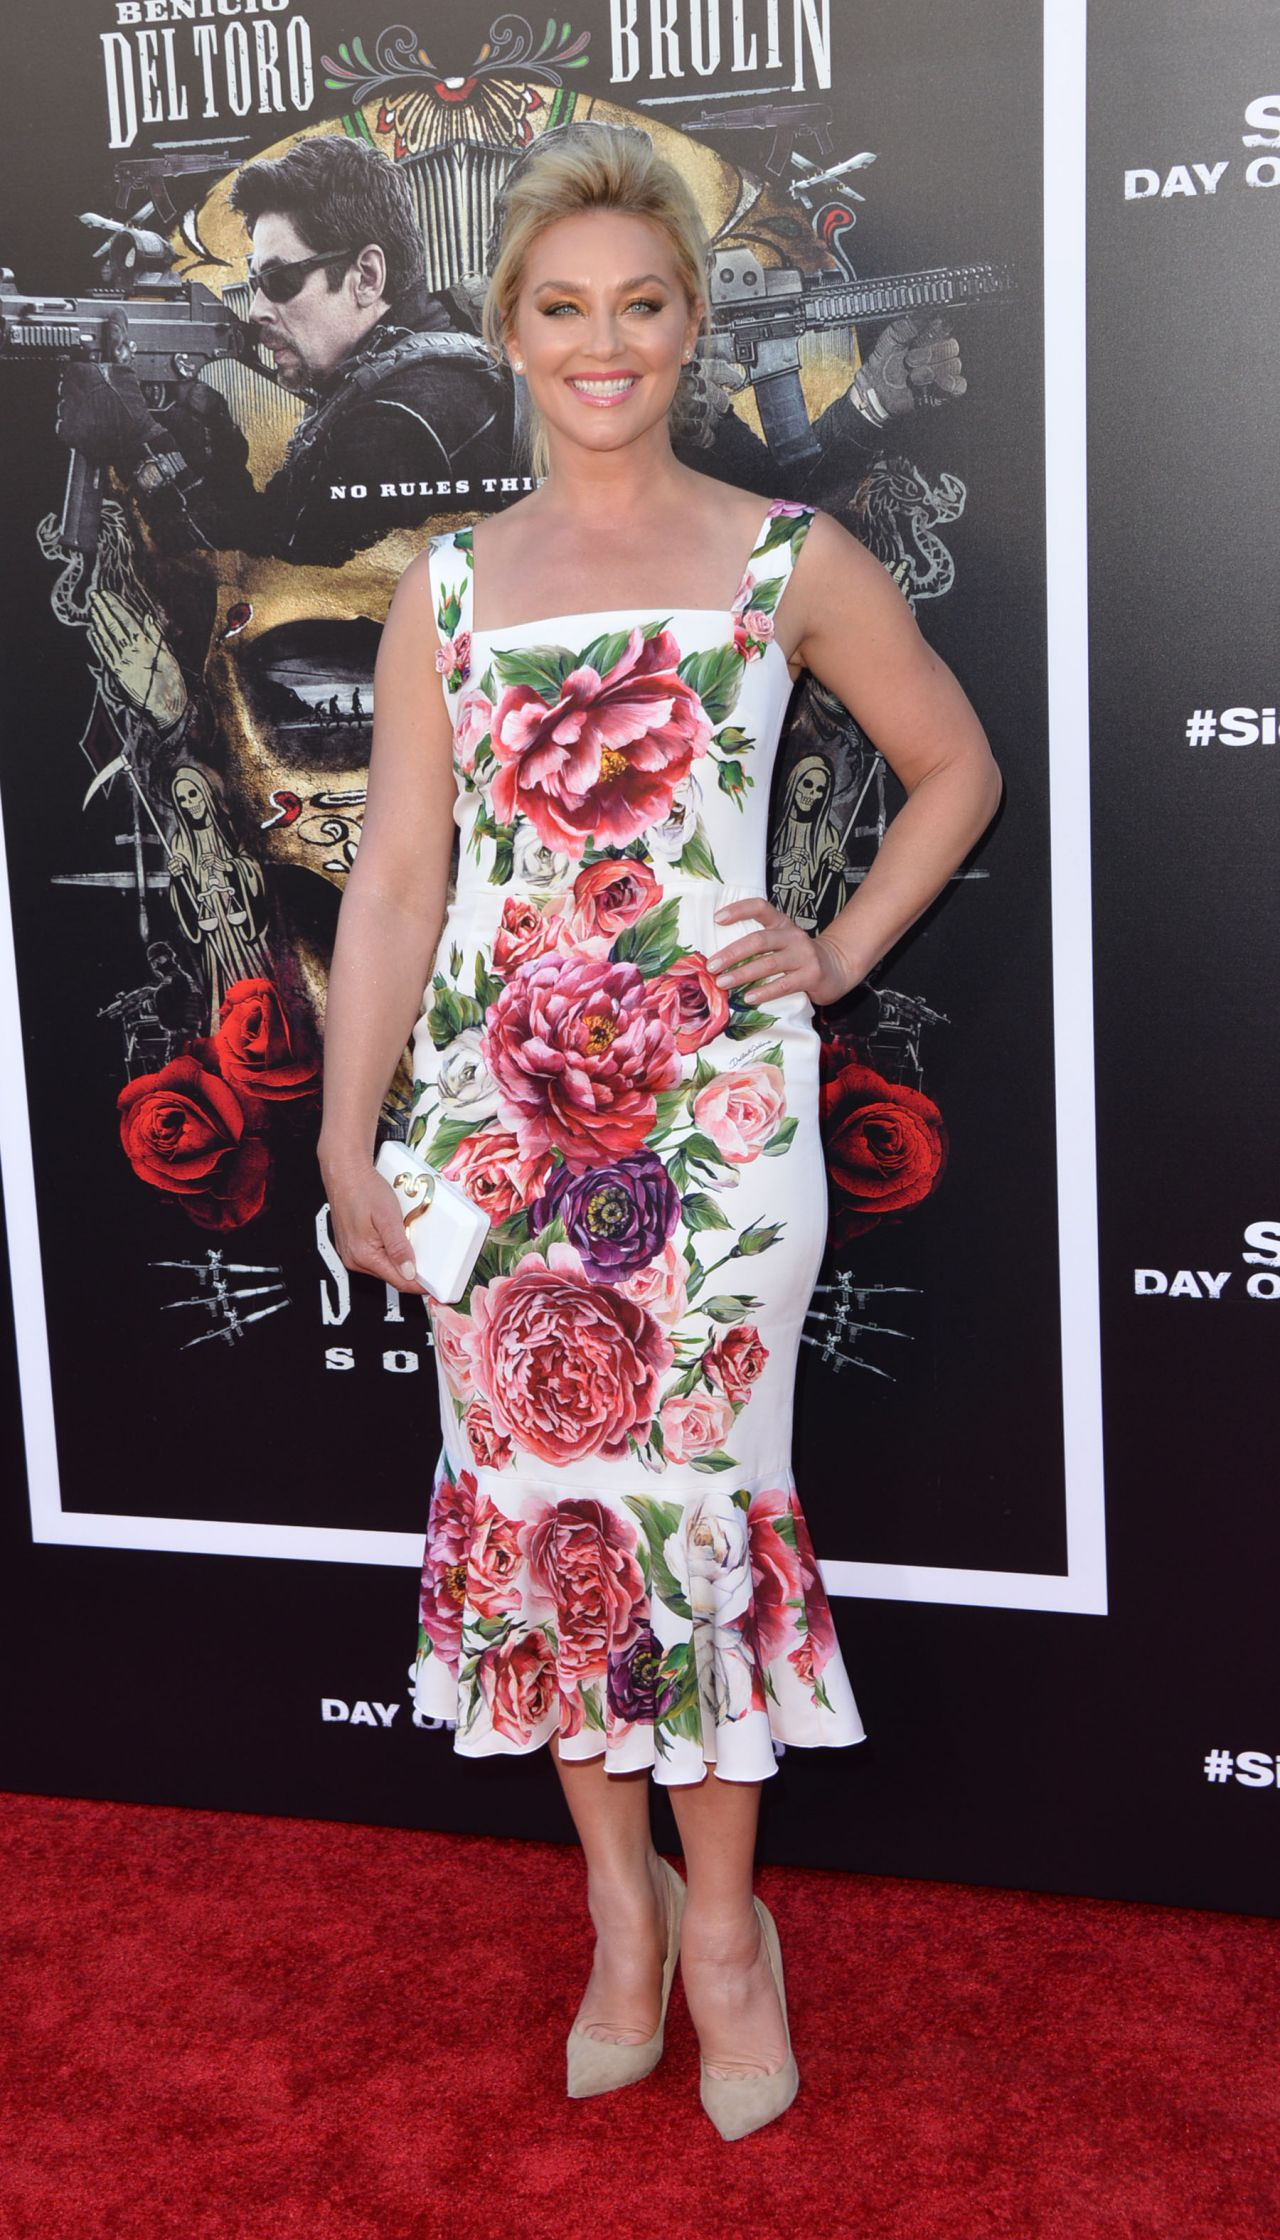 https://celebmafia.com/wp-content/uploads/2018/06/elisabeth-rohm-sicario-day-of-the-soldado-premiere-in-la-14.jpg